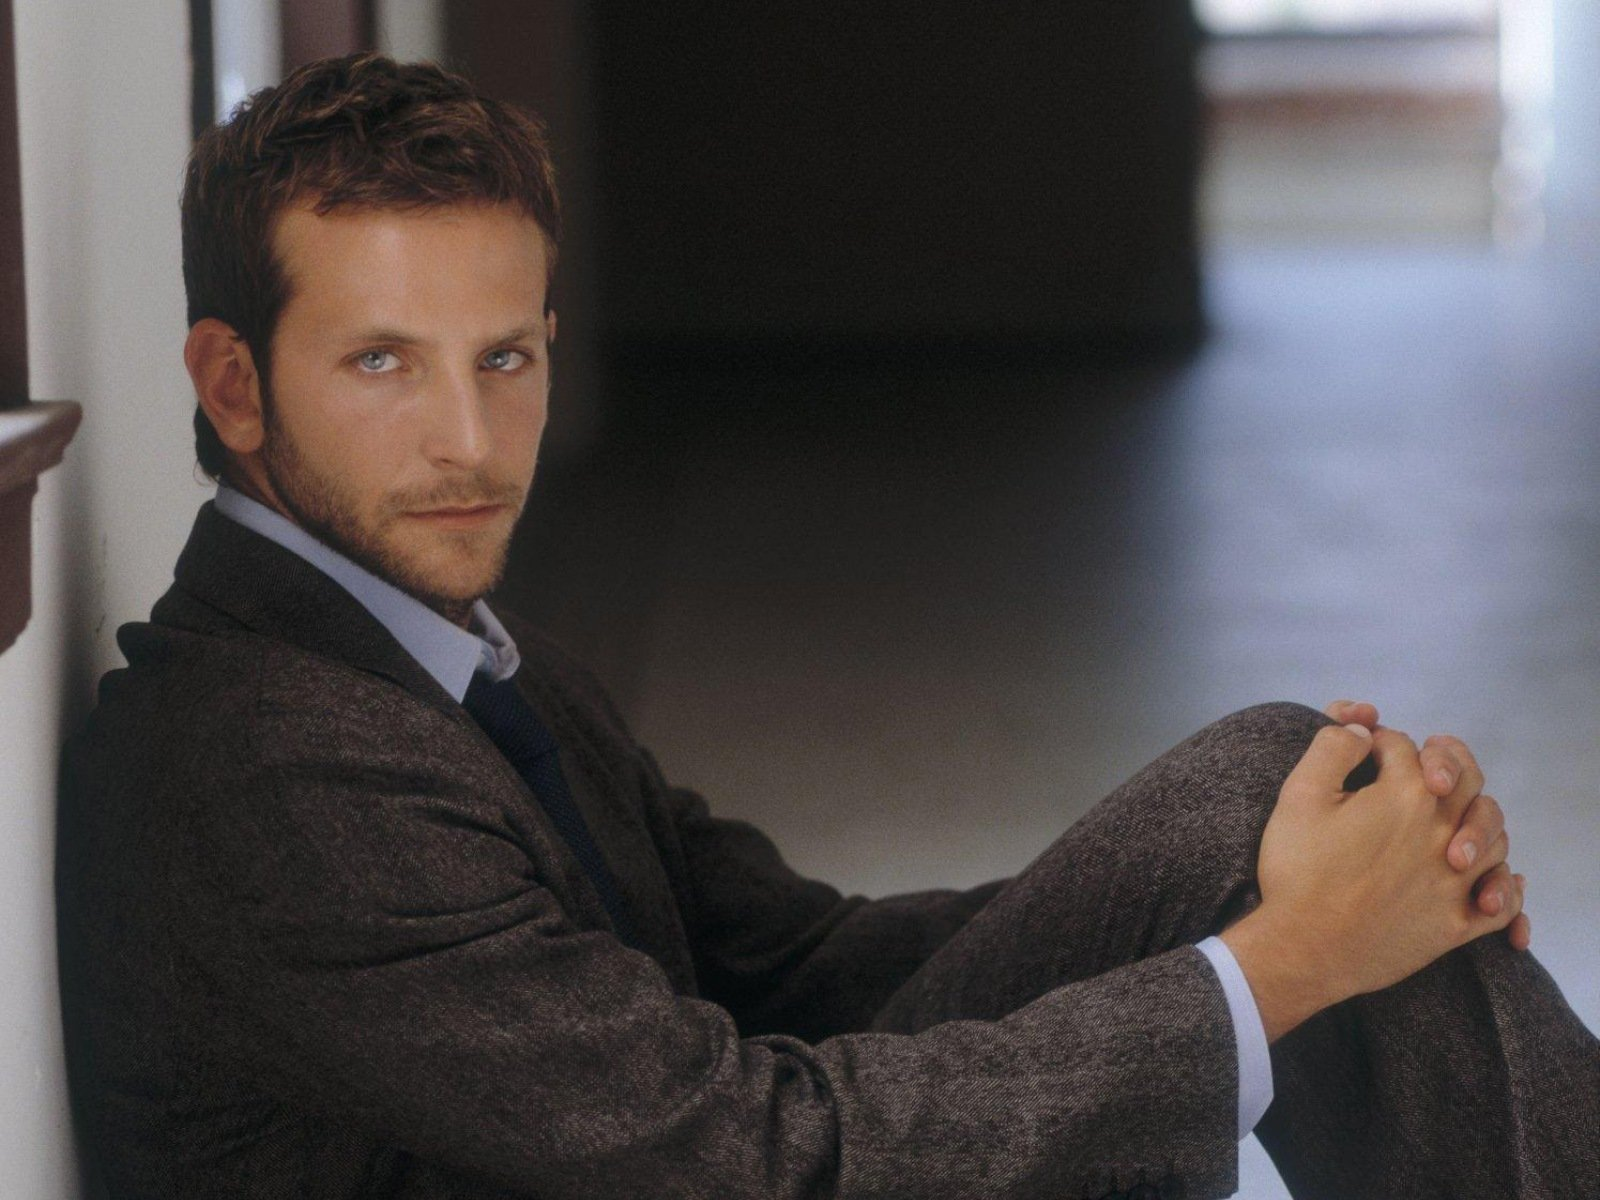 Bradley Cooper Wallpapers High Resolution and Quality Download 1600x1200